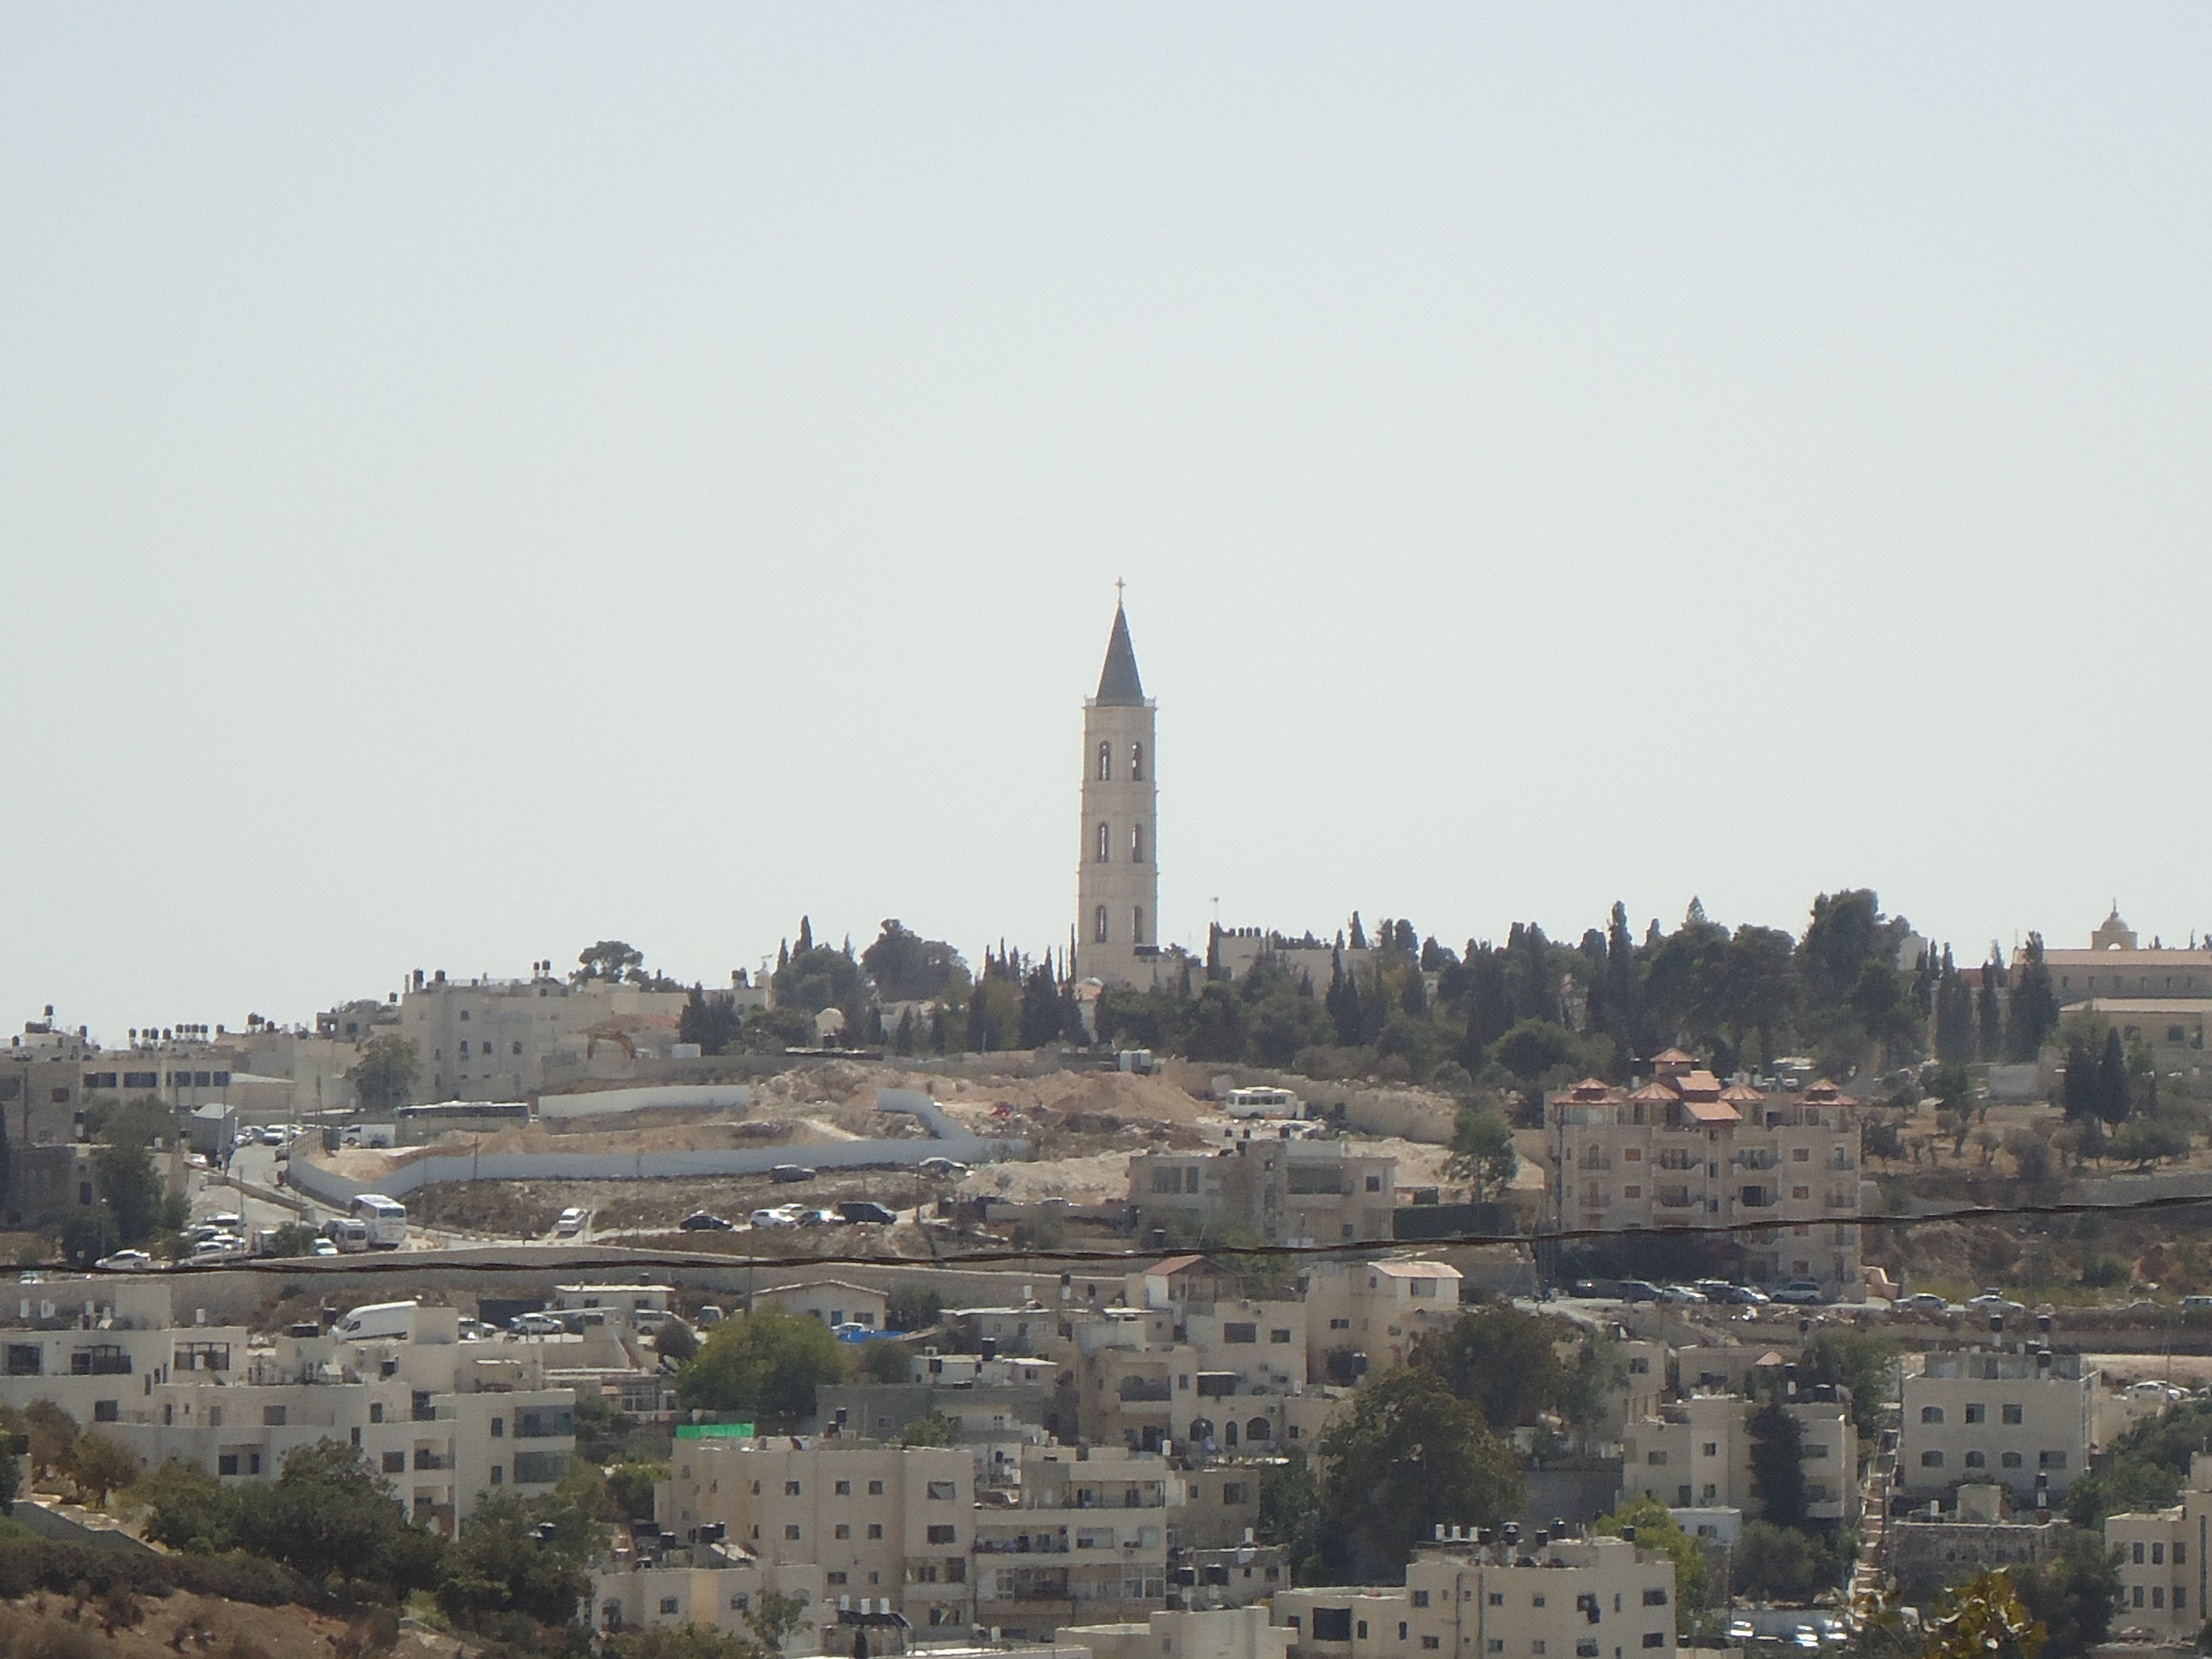 Mt. Scopus W Mt. of Olives; Church of the Ascension (Greek Orthodox)